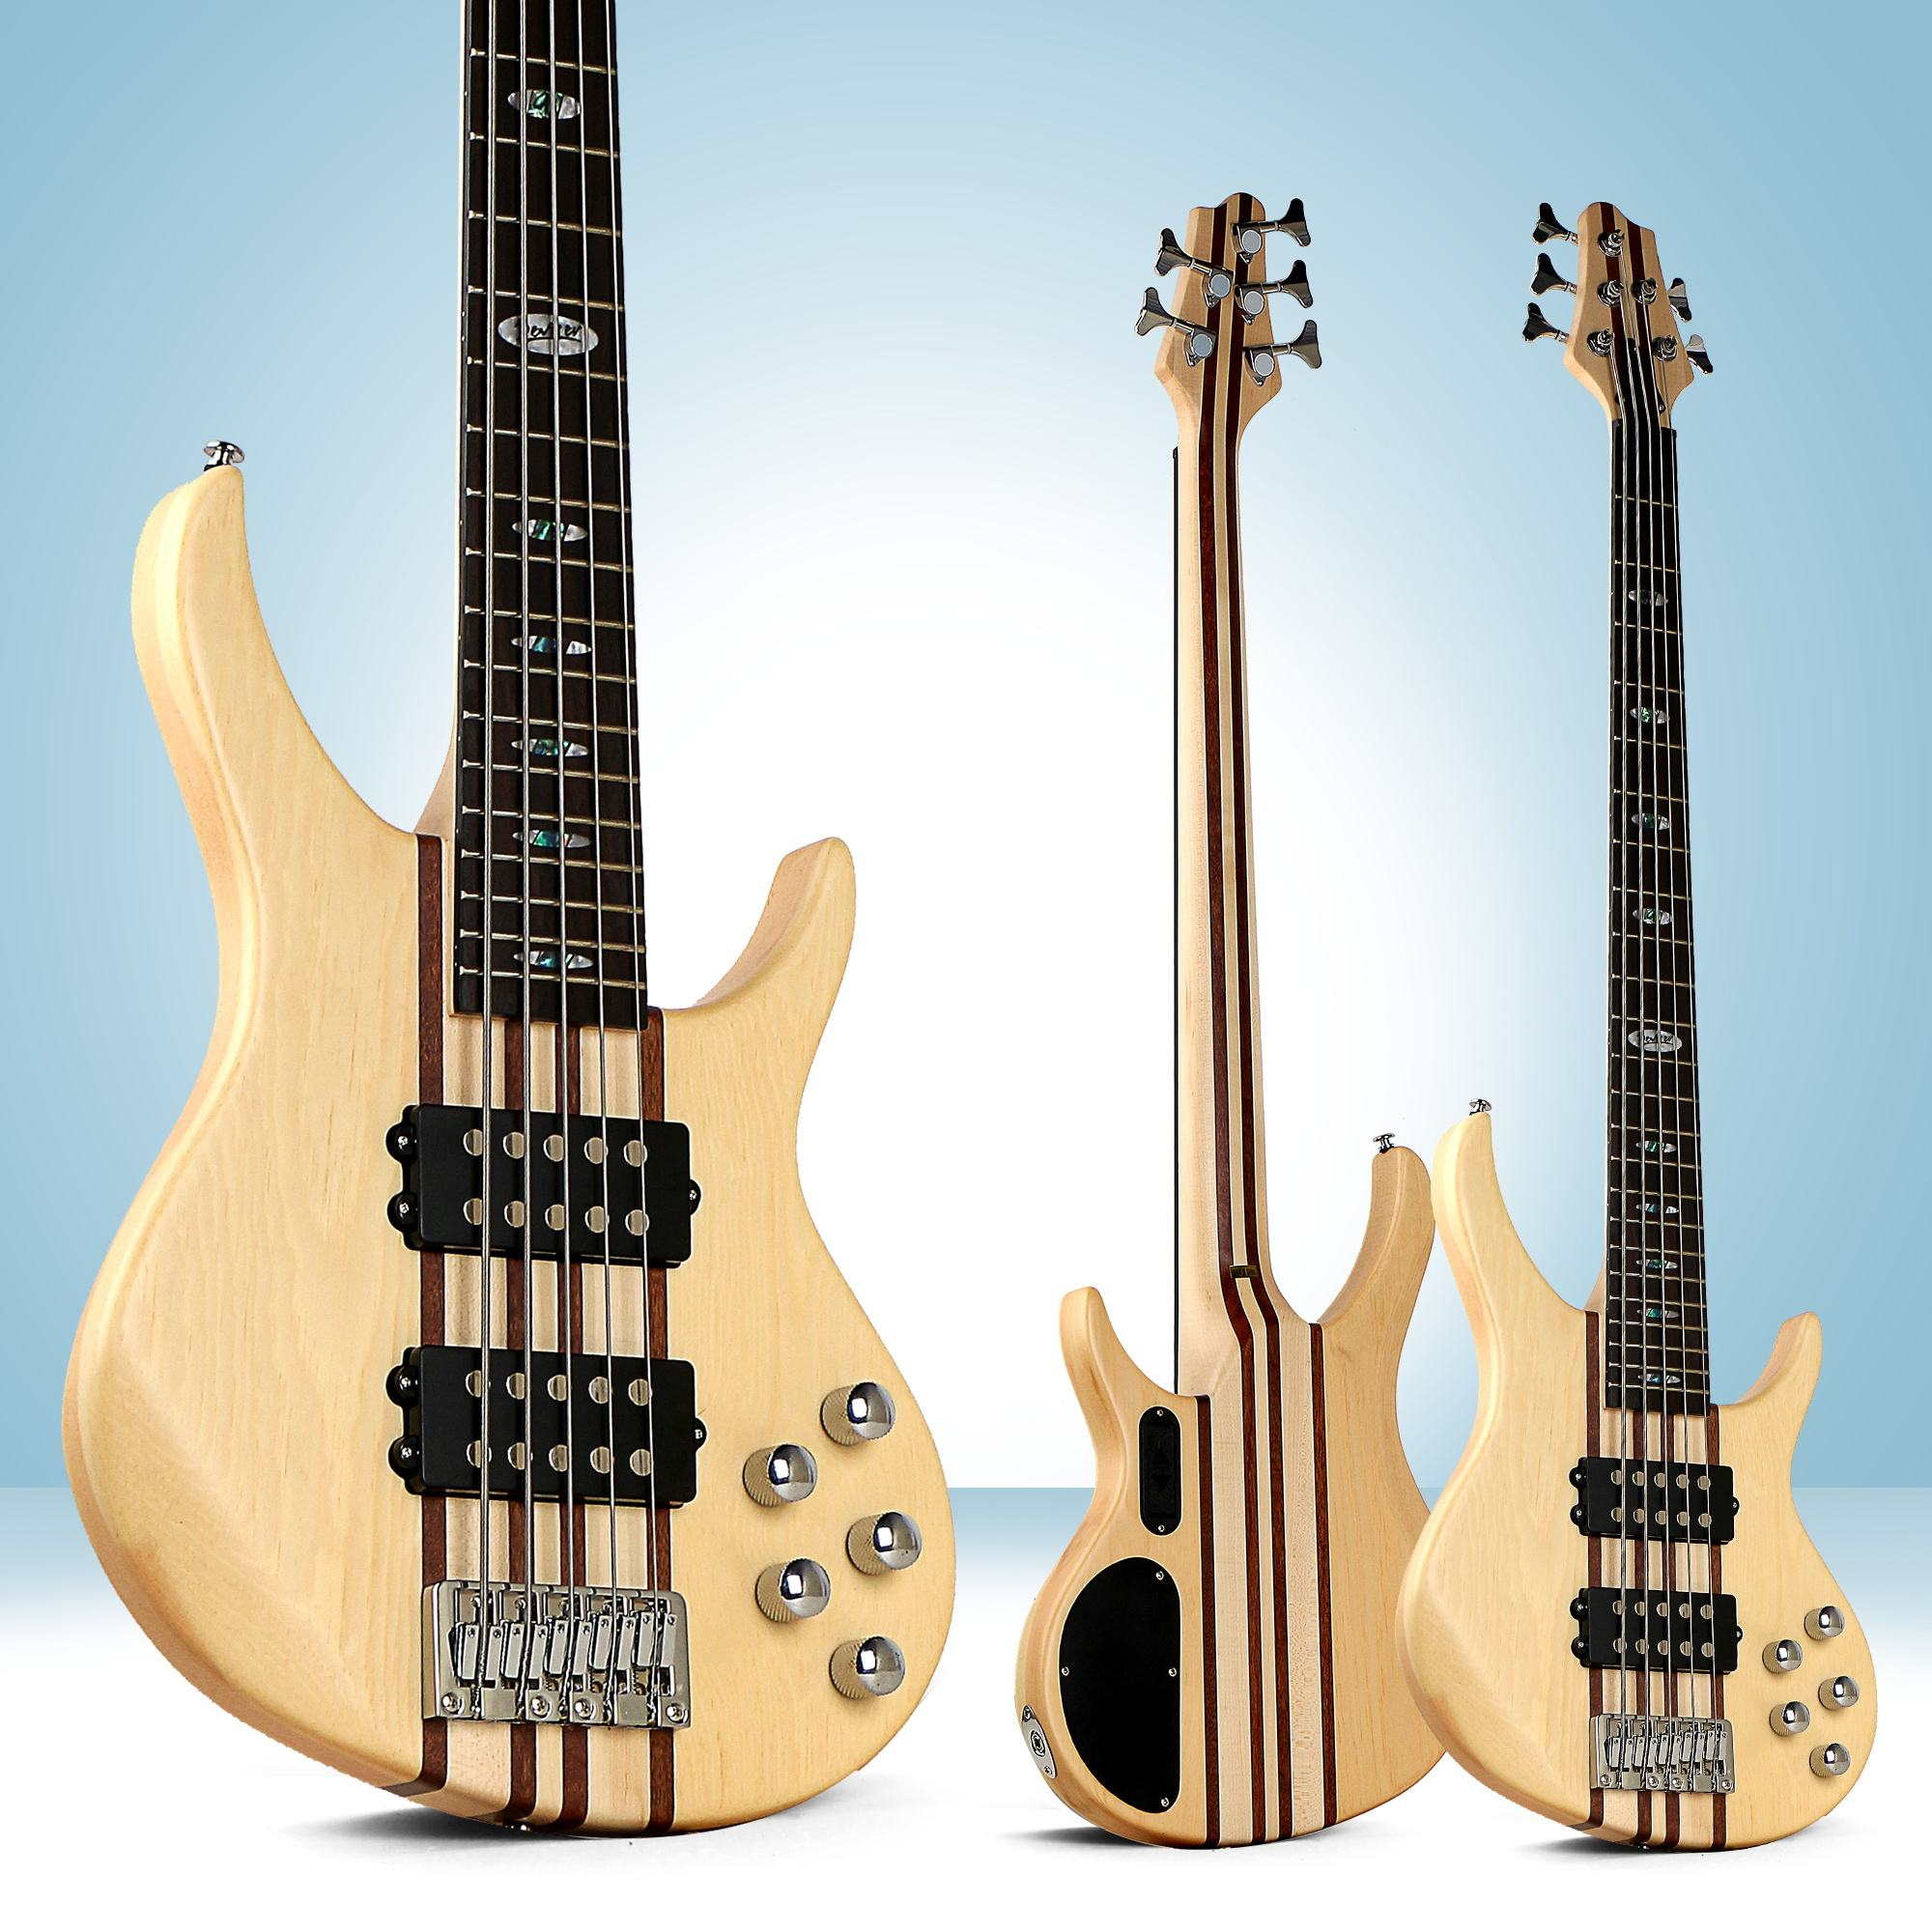 Natural wood electric bass guitar China wholesale factory 5 strings Rosewood 24 fret H-H pickups L-B45-T5